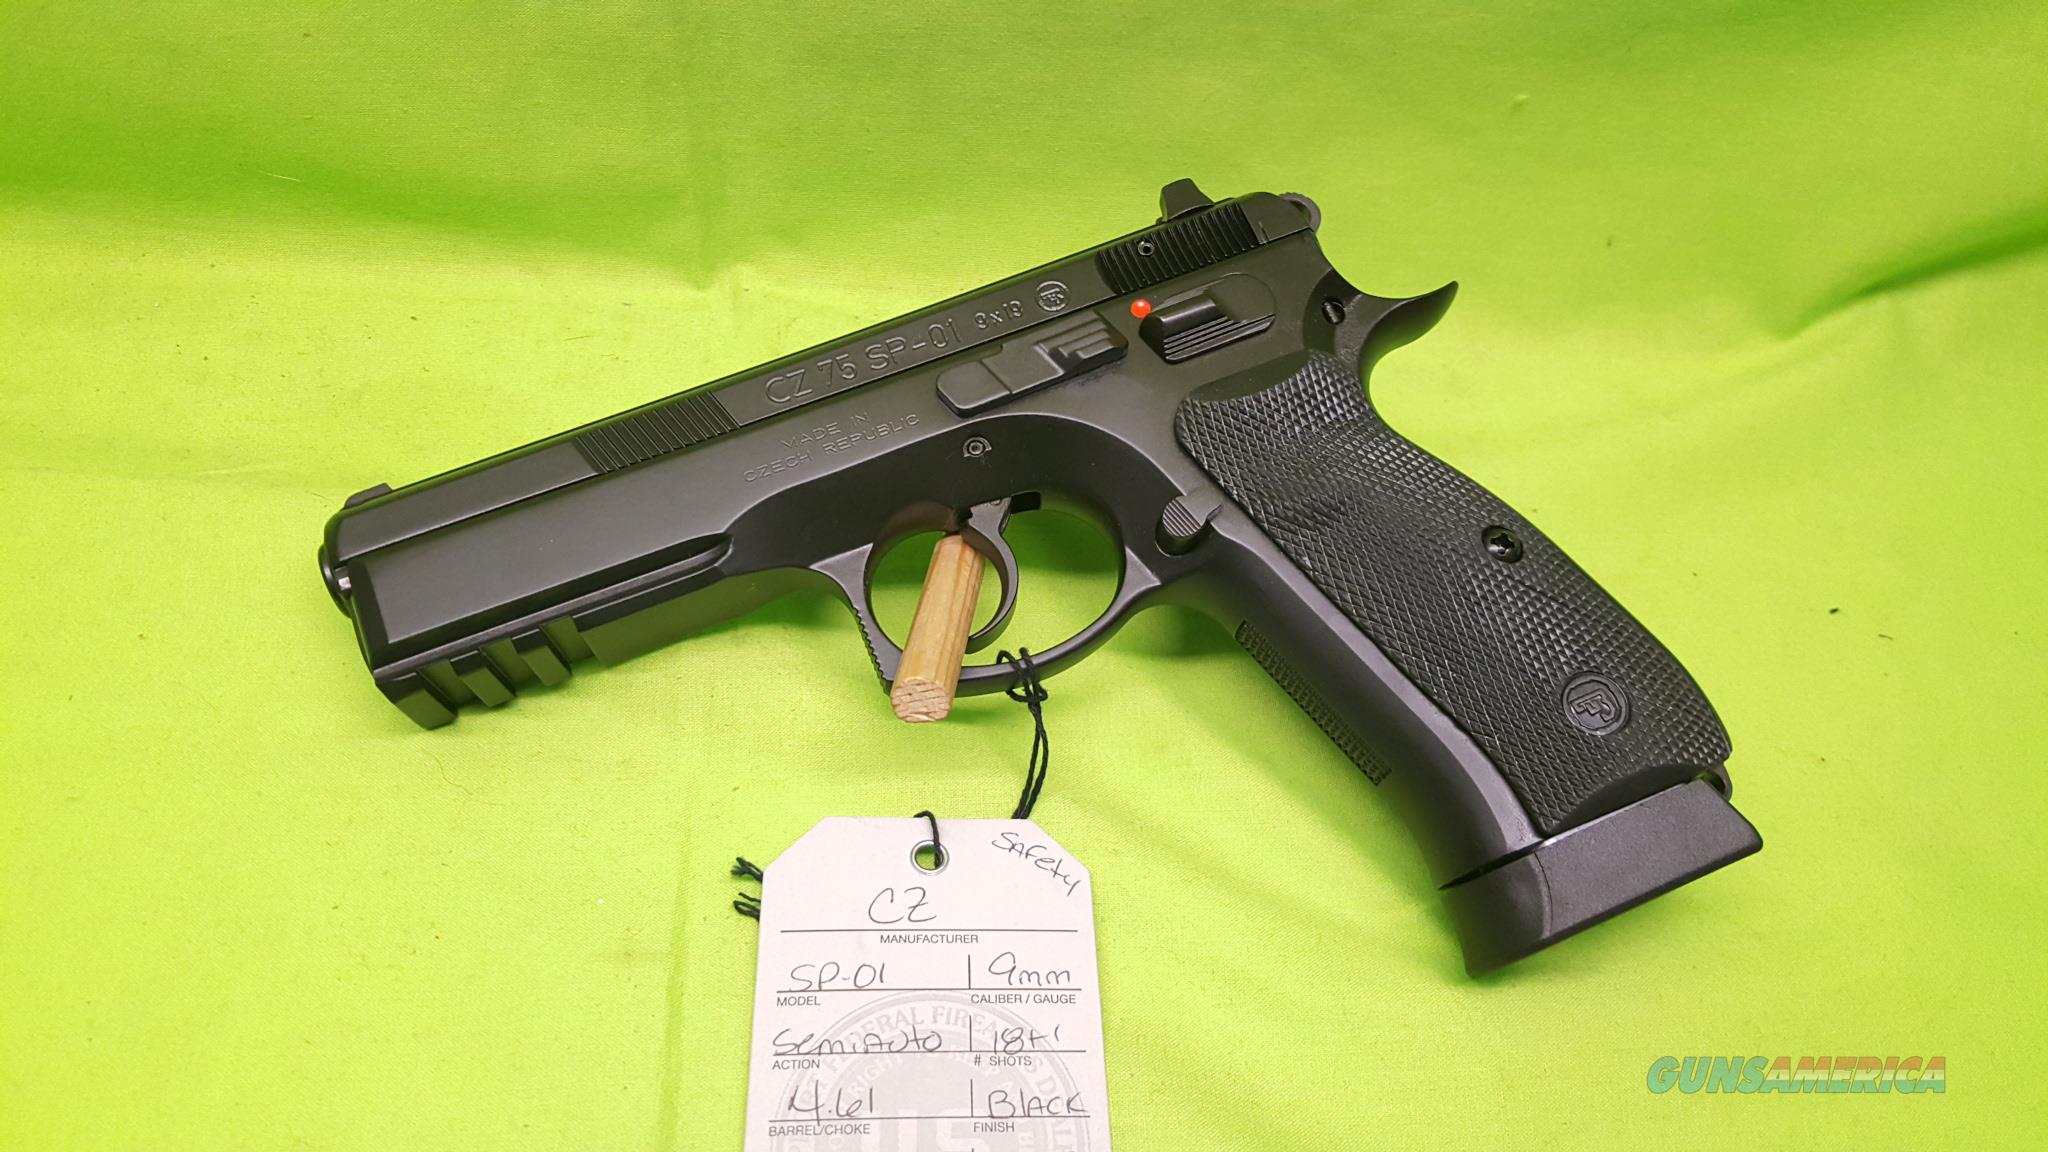 CZ SP-01 SP 01 9MM 18+1 NS 4.6 RAIL SAFETY 91152  Guns > Pistols > CZ Pistols